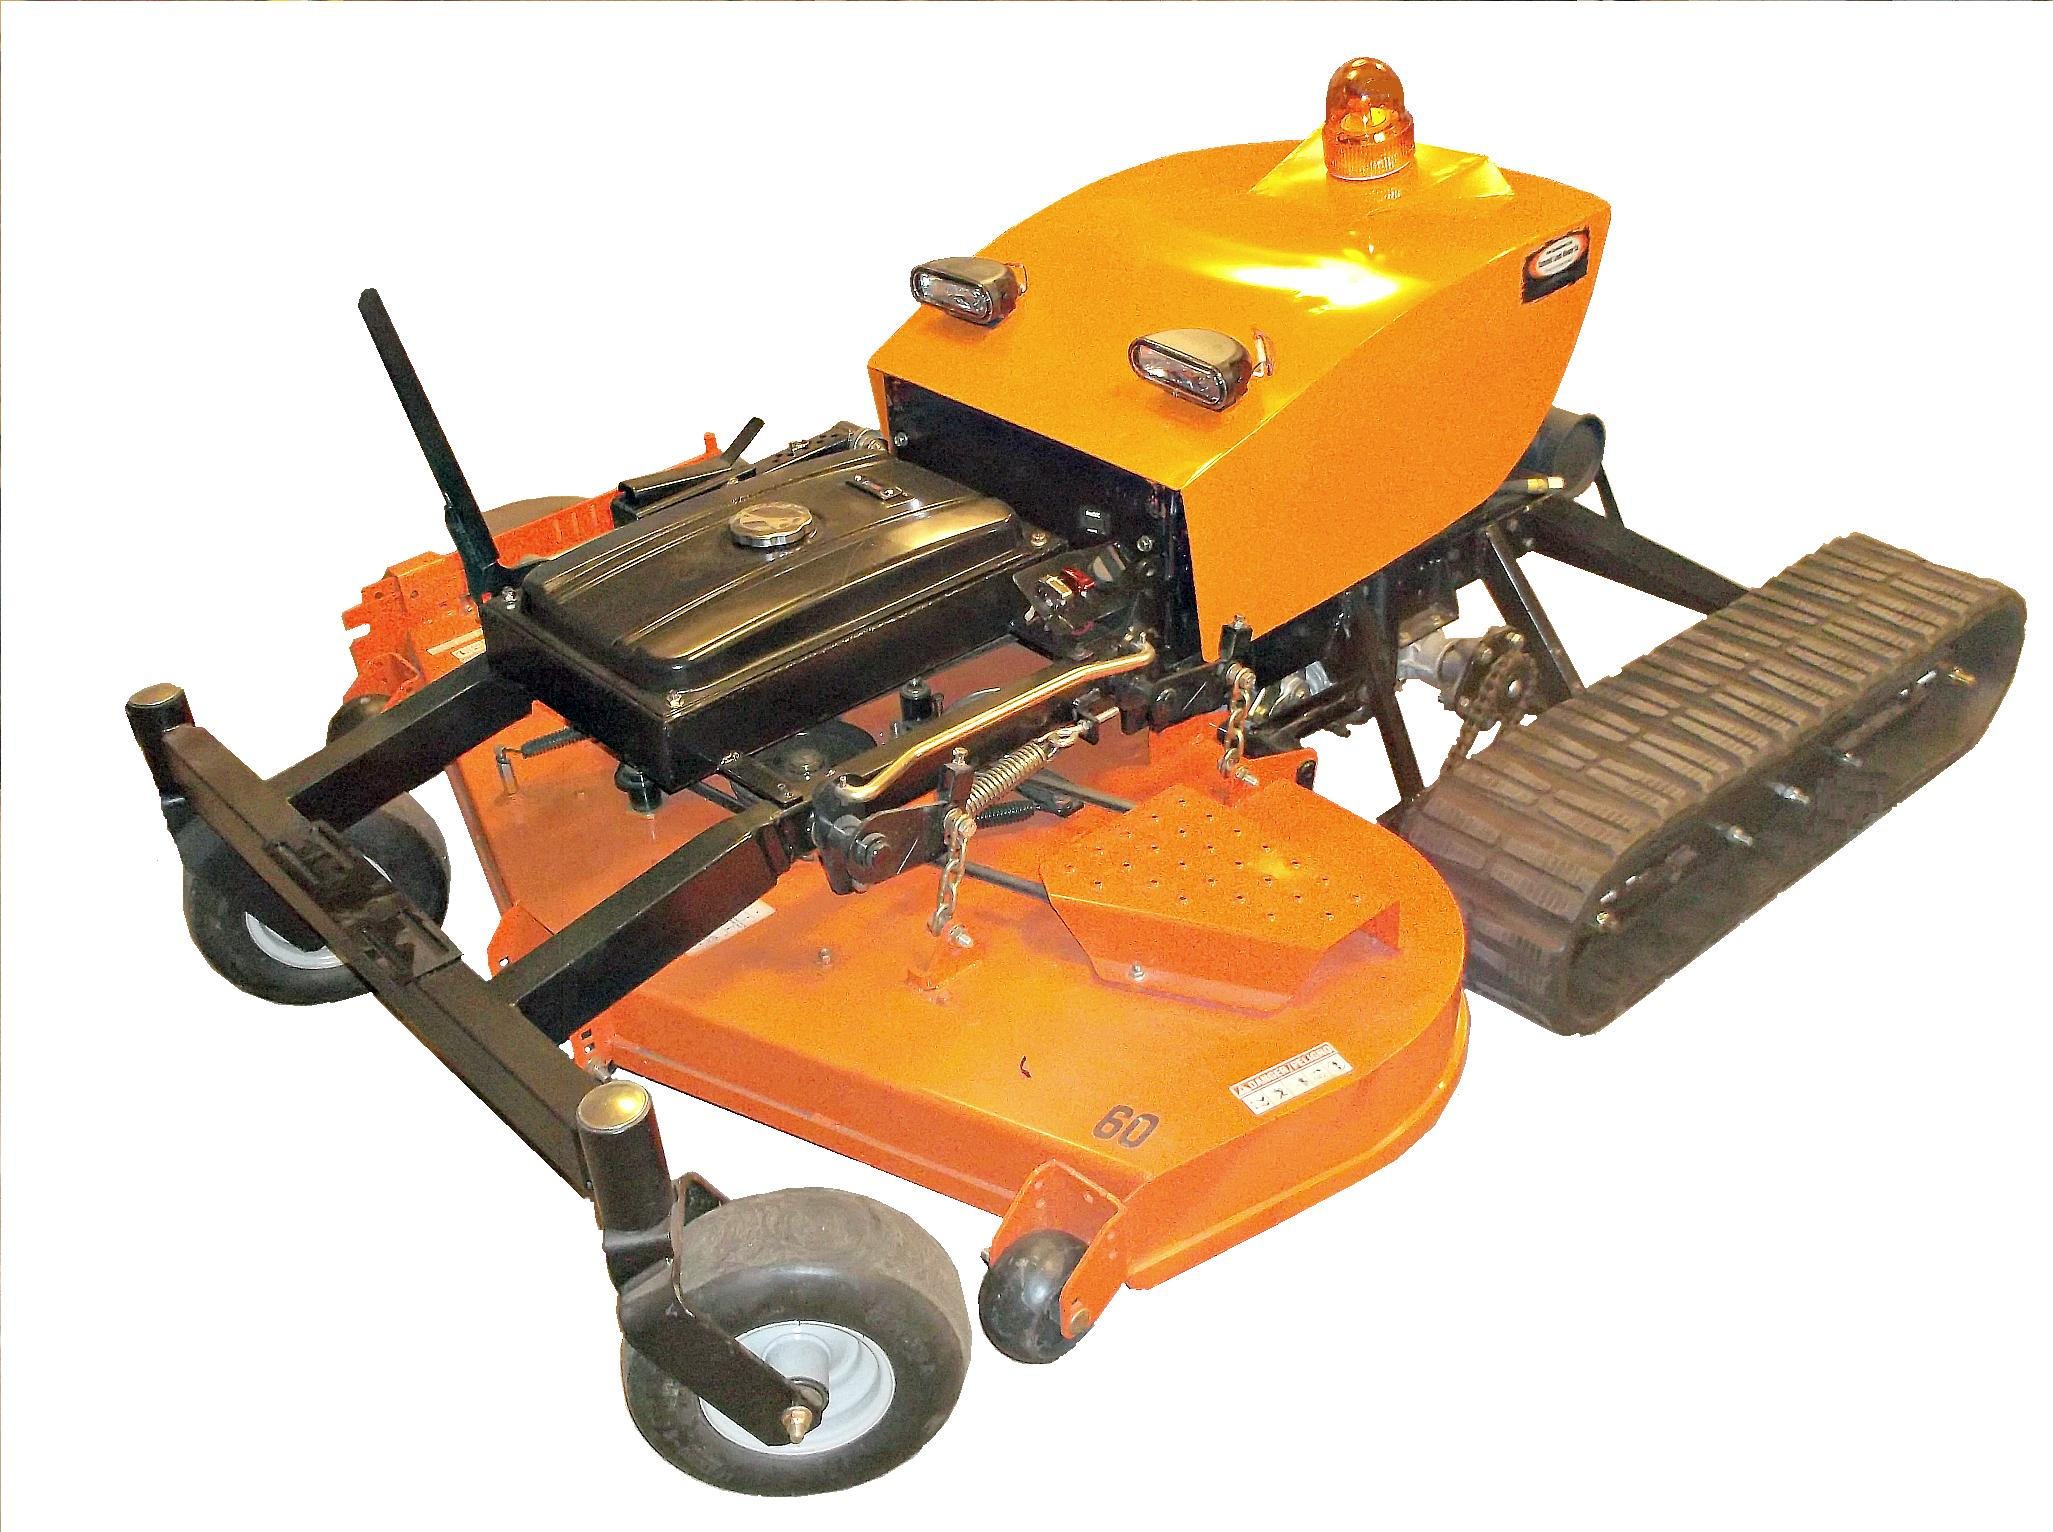 Summit Lawn Mower Company Introduces The World S First